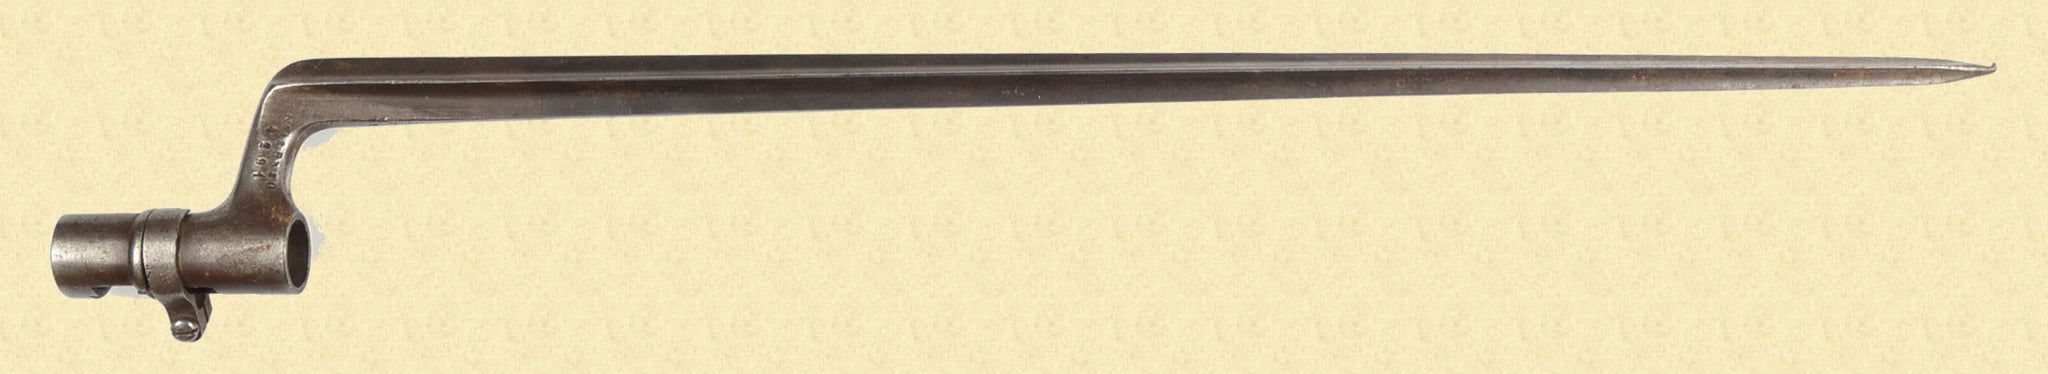 SWEDISH 1867 ROLLING BLOCK BAYONET